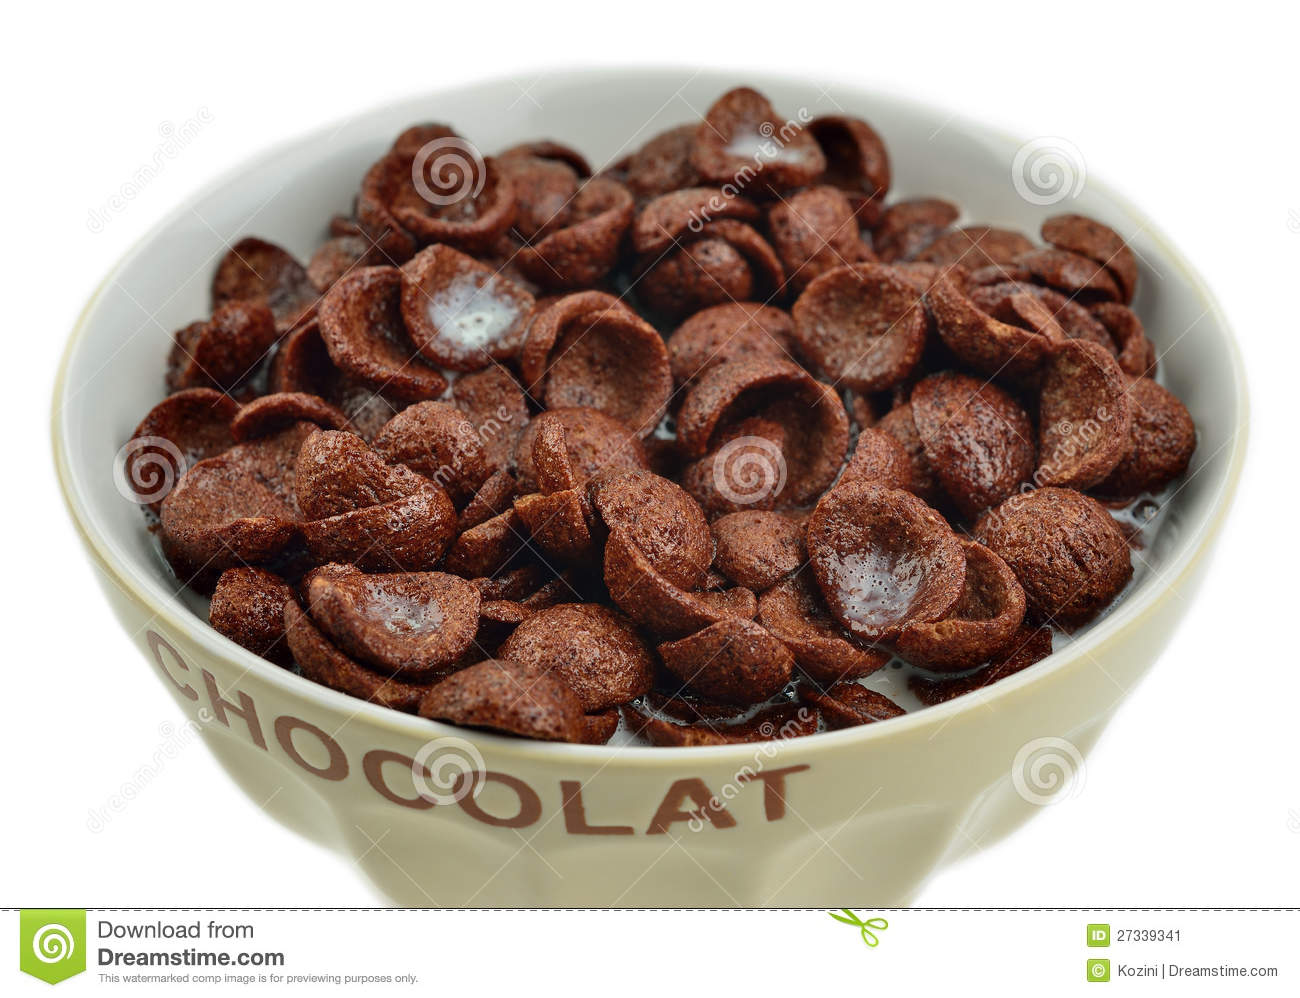 Bowl Of Chocolate Flakes, Cereals Stock Image - Image: 27339341